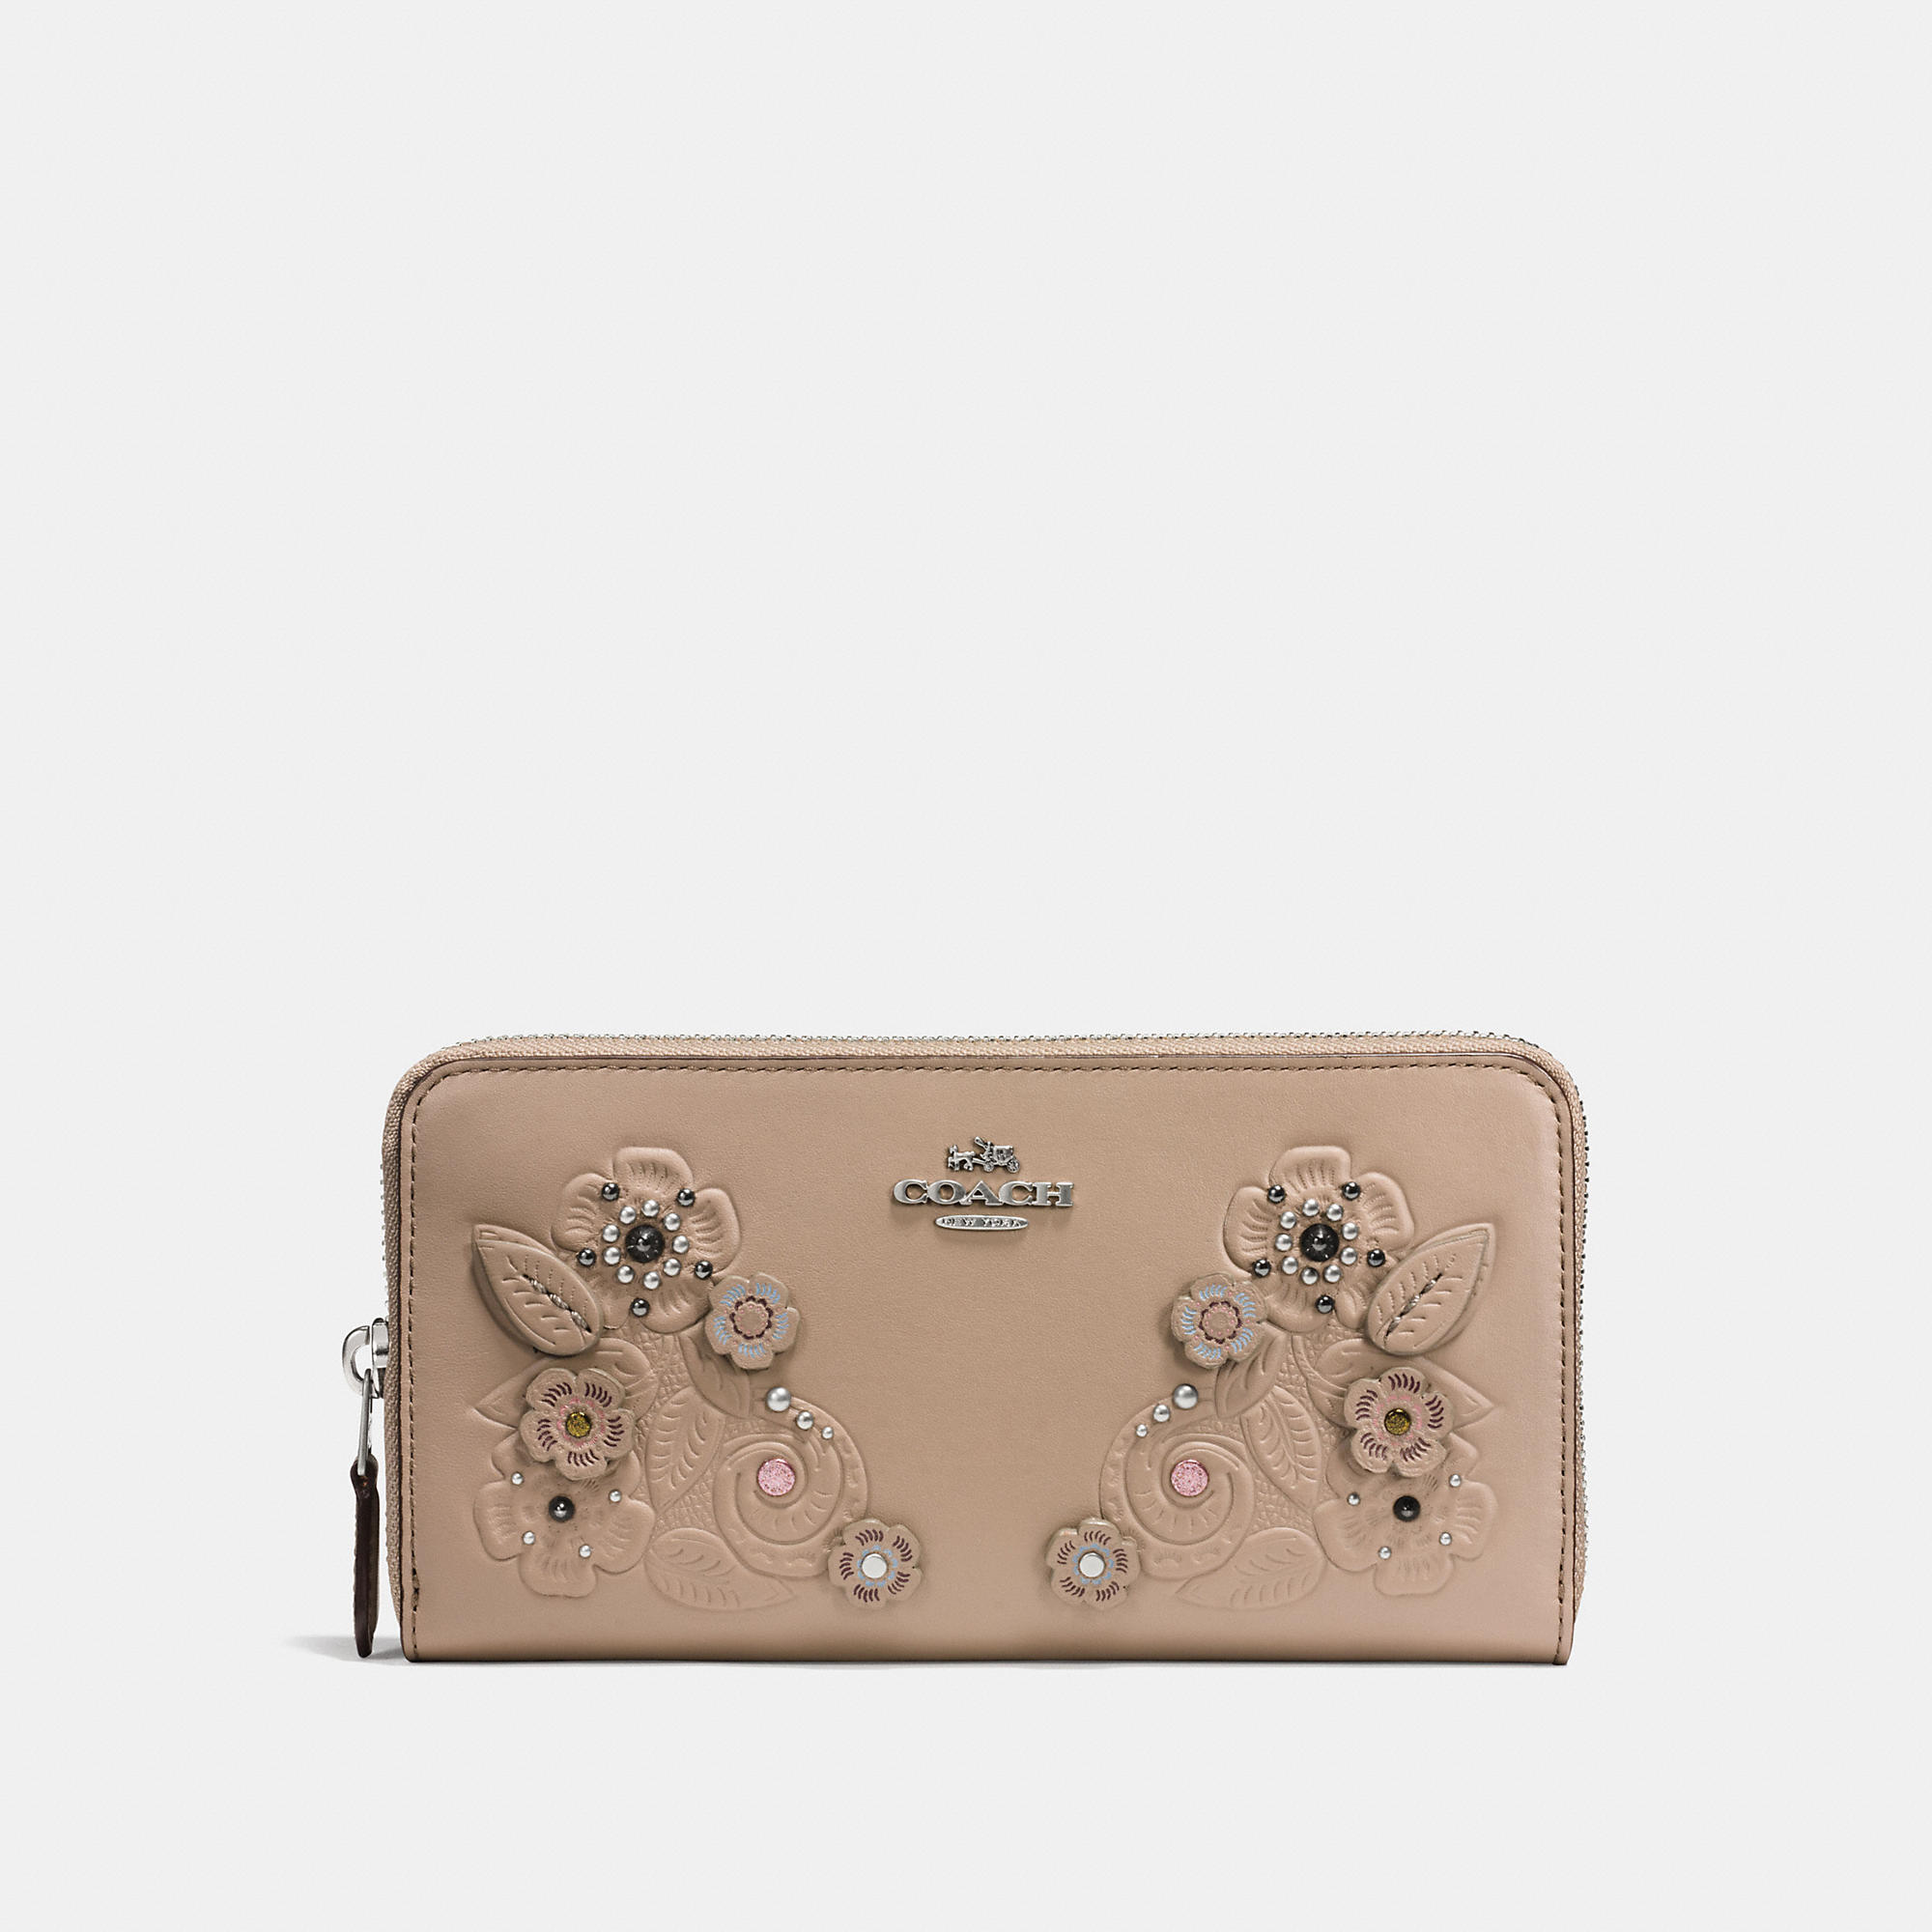 Coach Accordion Zip Wallet In Glovetanned Leather With Tea Rose Tooling